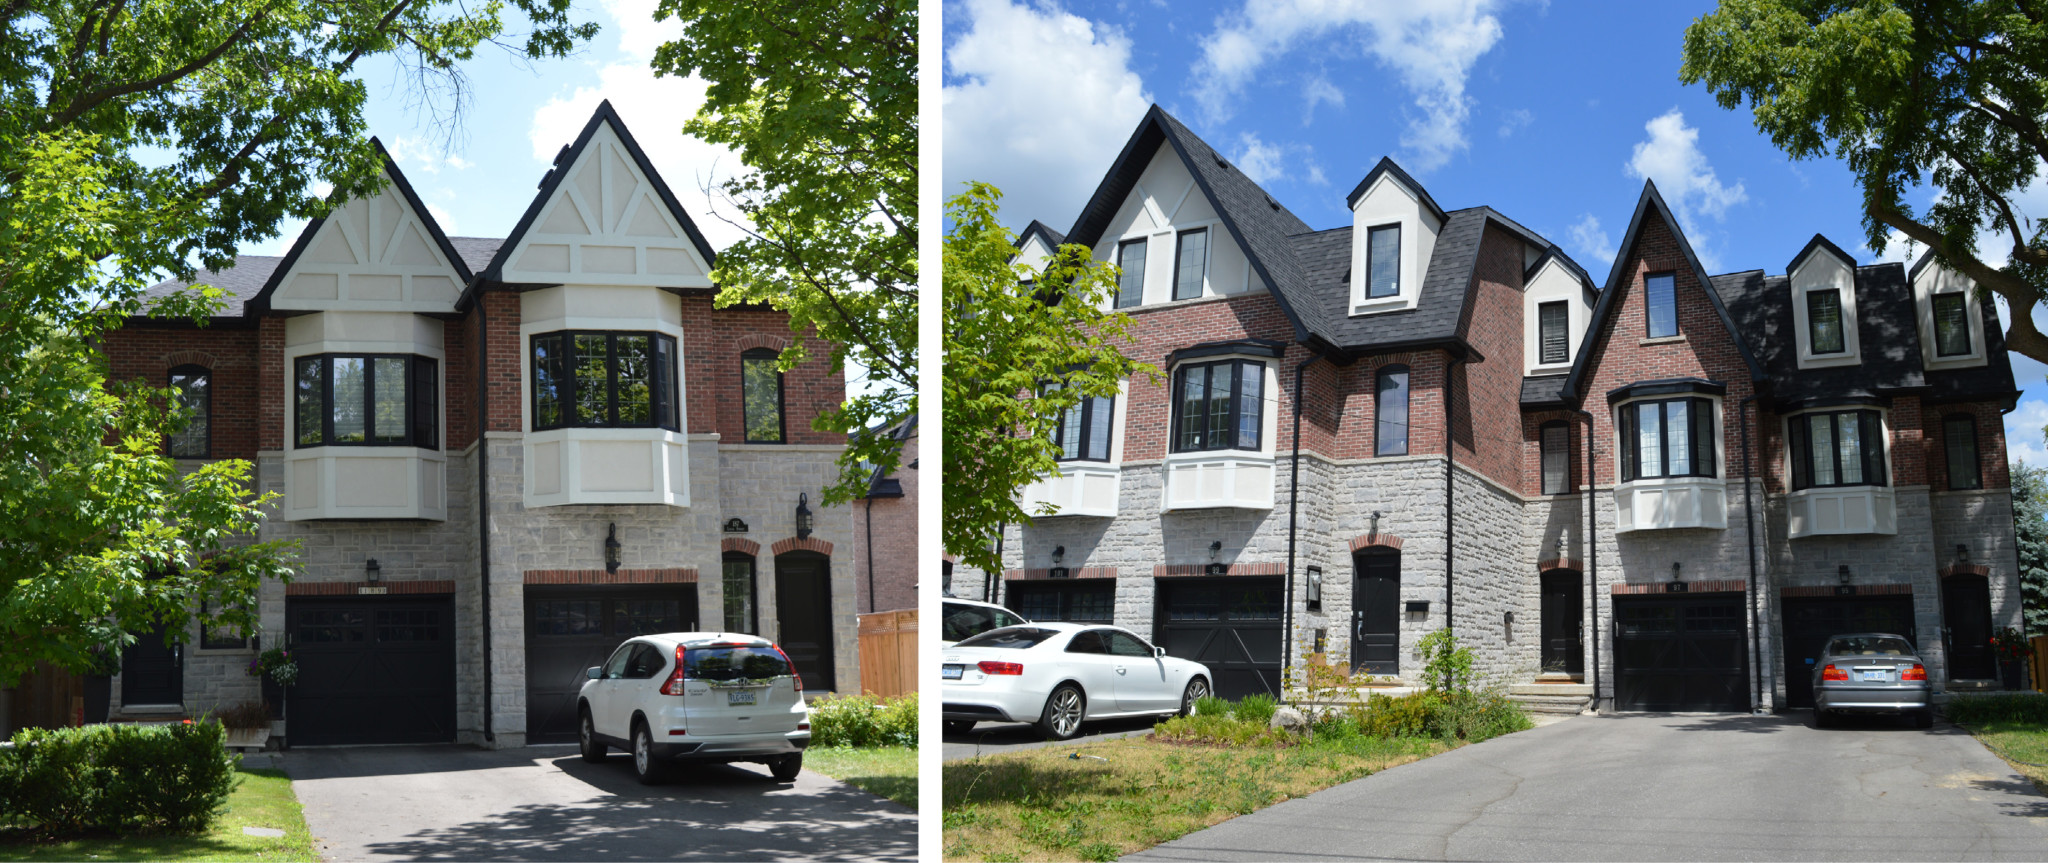 Hunt Avenue Townhouses and Lucas Street Semi-detached